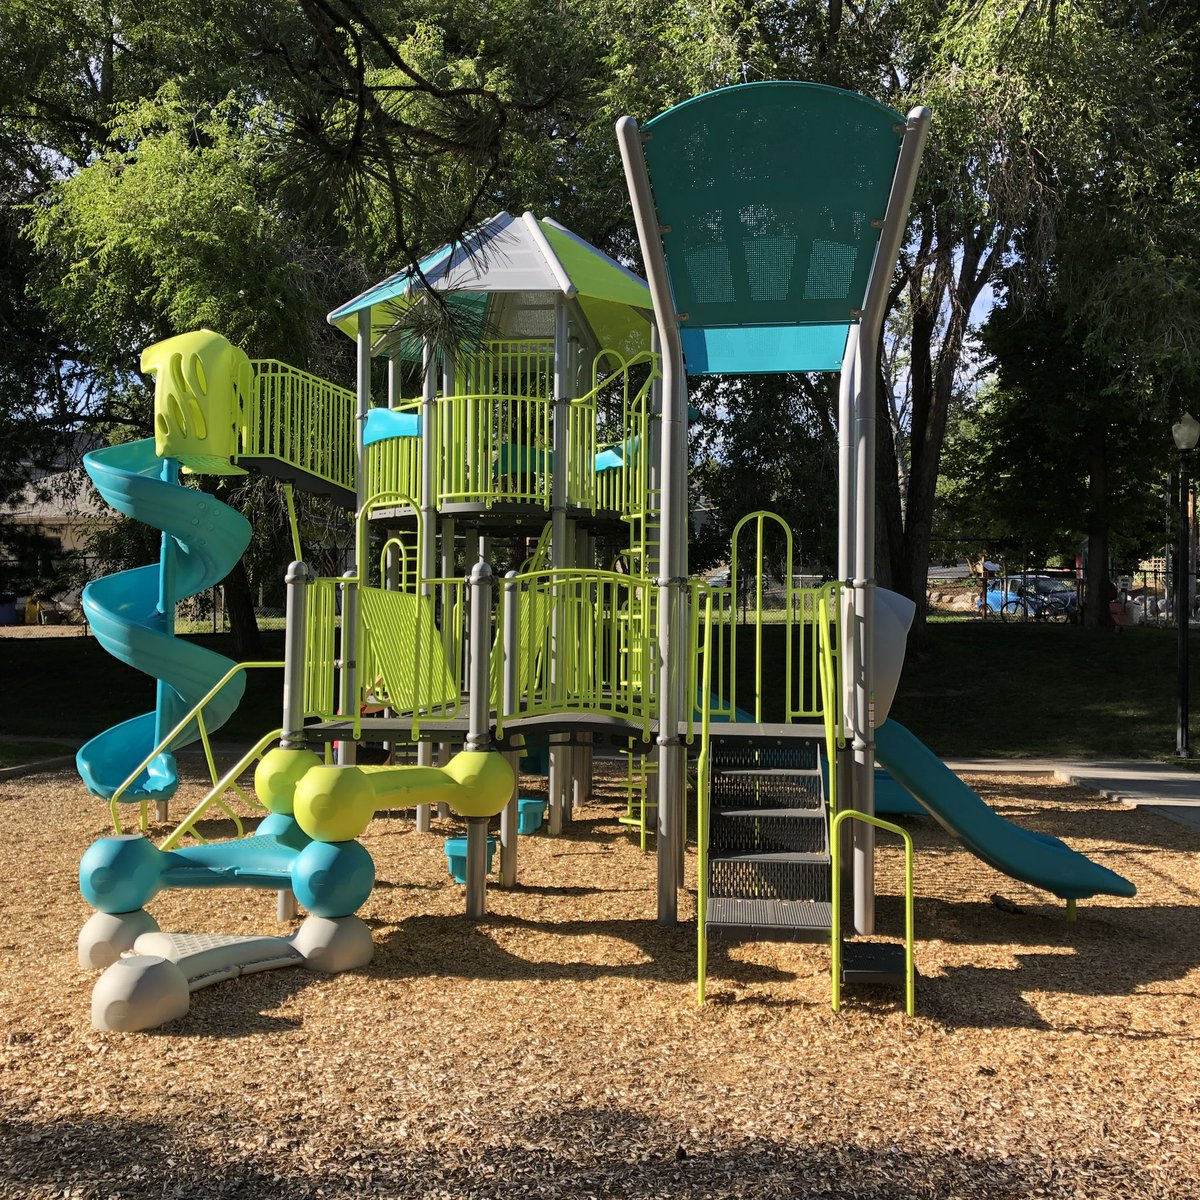 The only valid marker of generational differences is playground aesthetics.